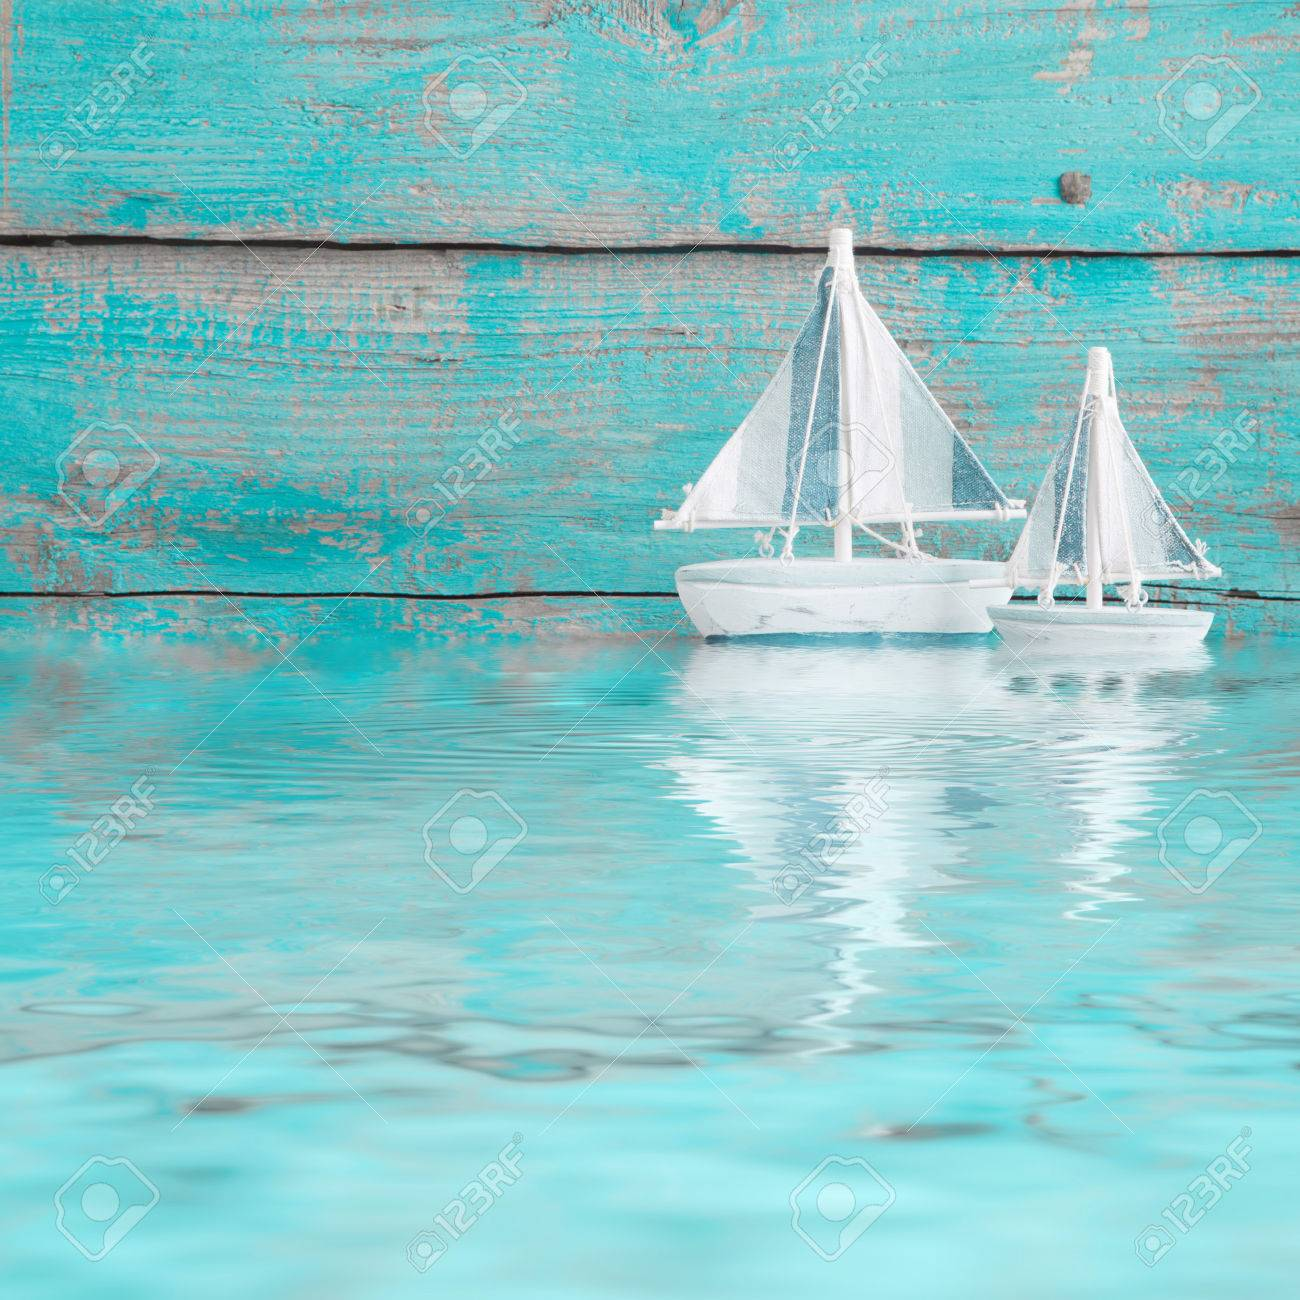 Toy sailboats on the water as a wooden background in turquoise